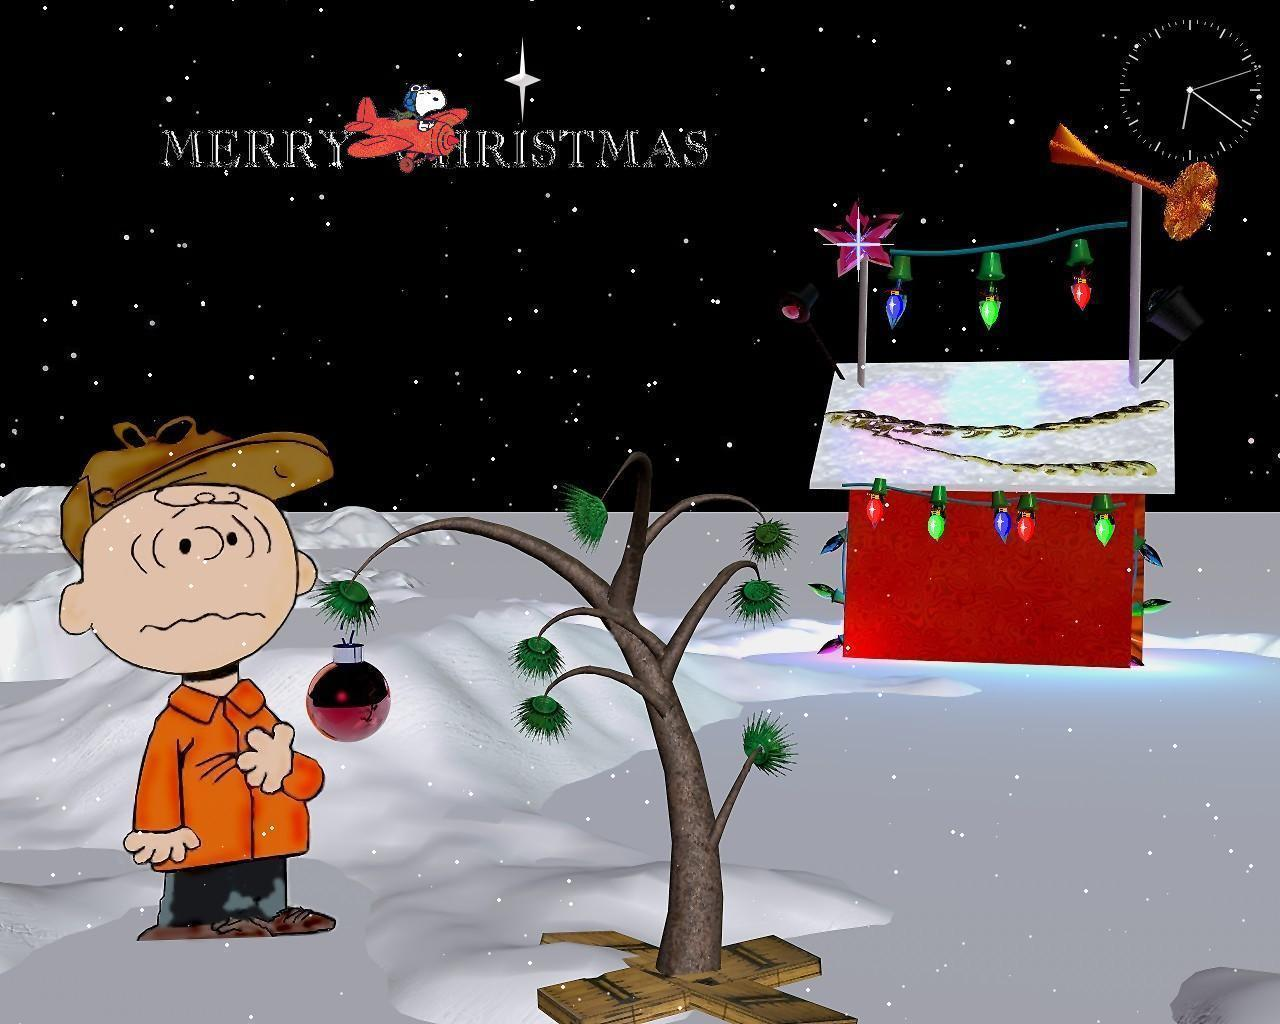 Free Charlie Brown Clip Art Download Merry Christmas Charlie Brown